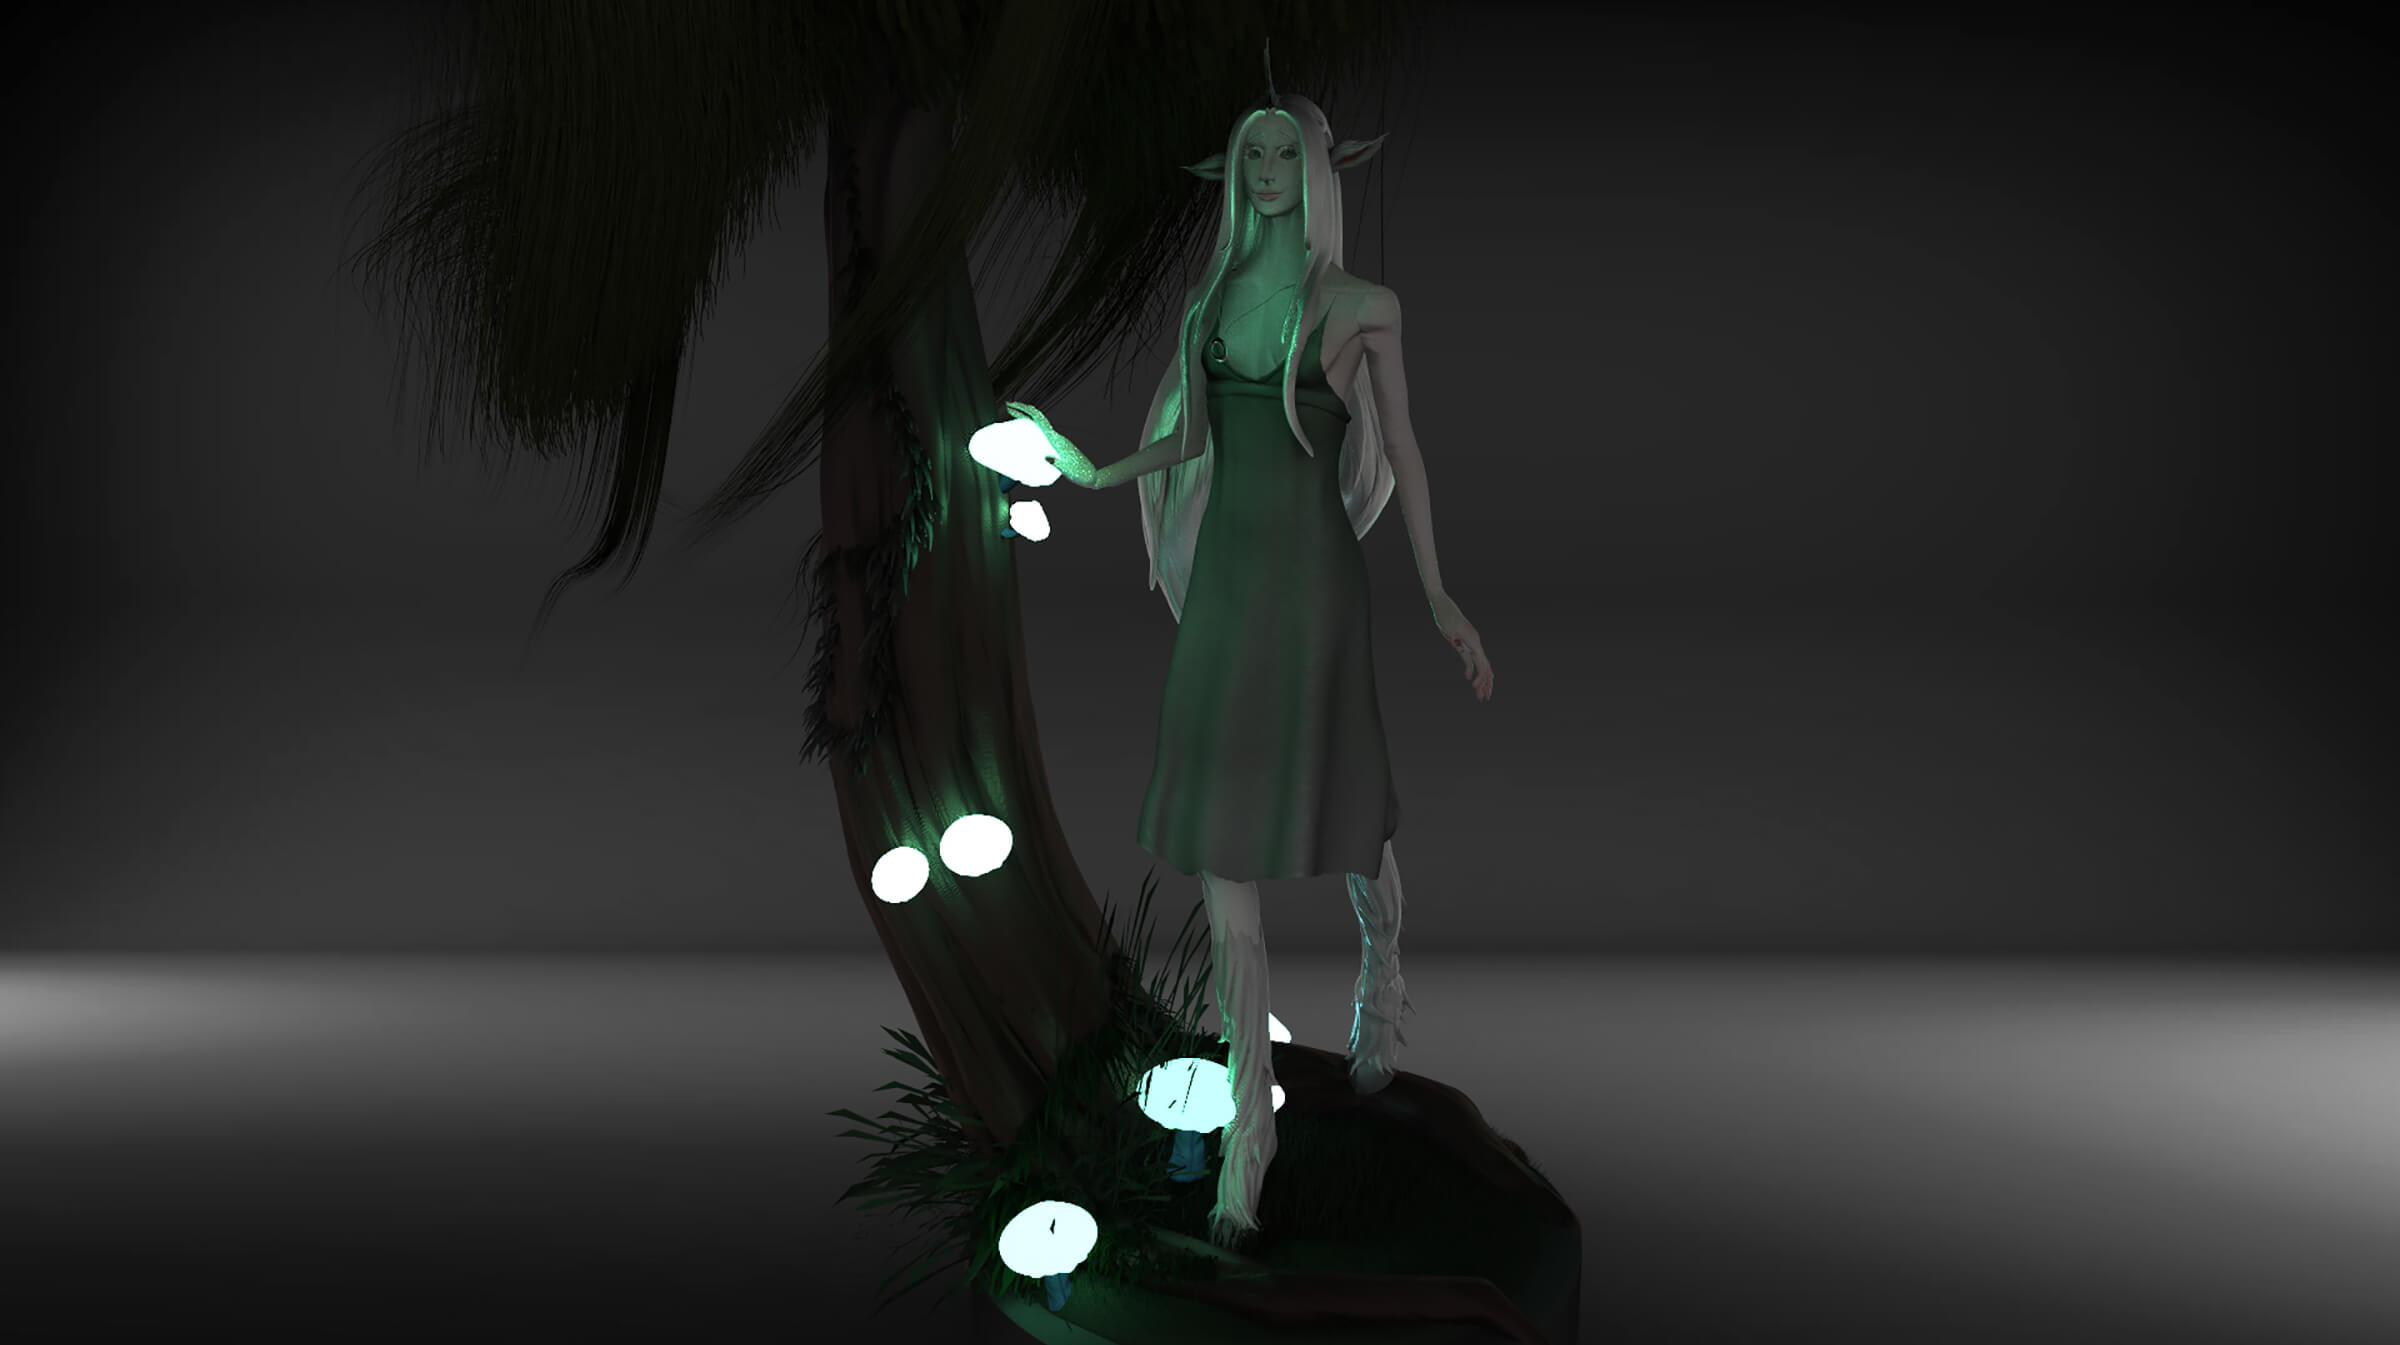 An elf-like character stands by a tree, glowing orbs floating near her